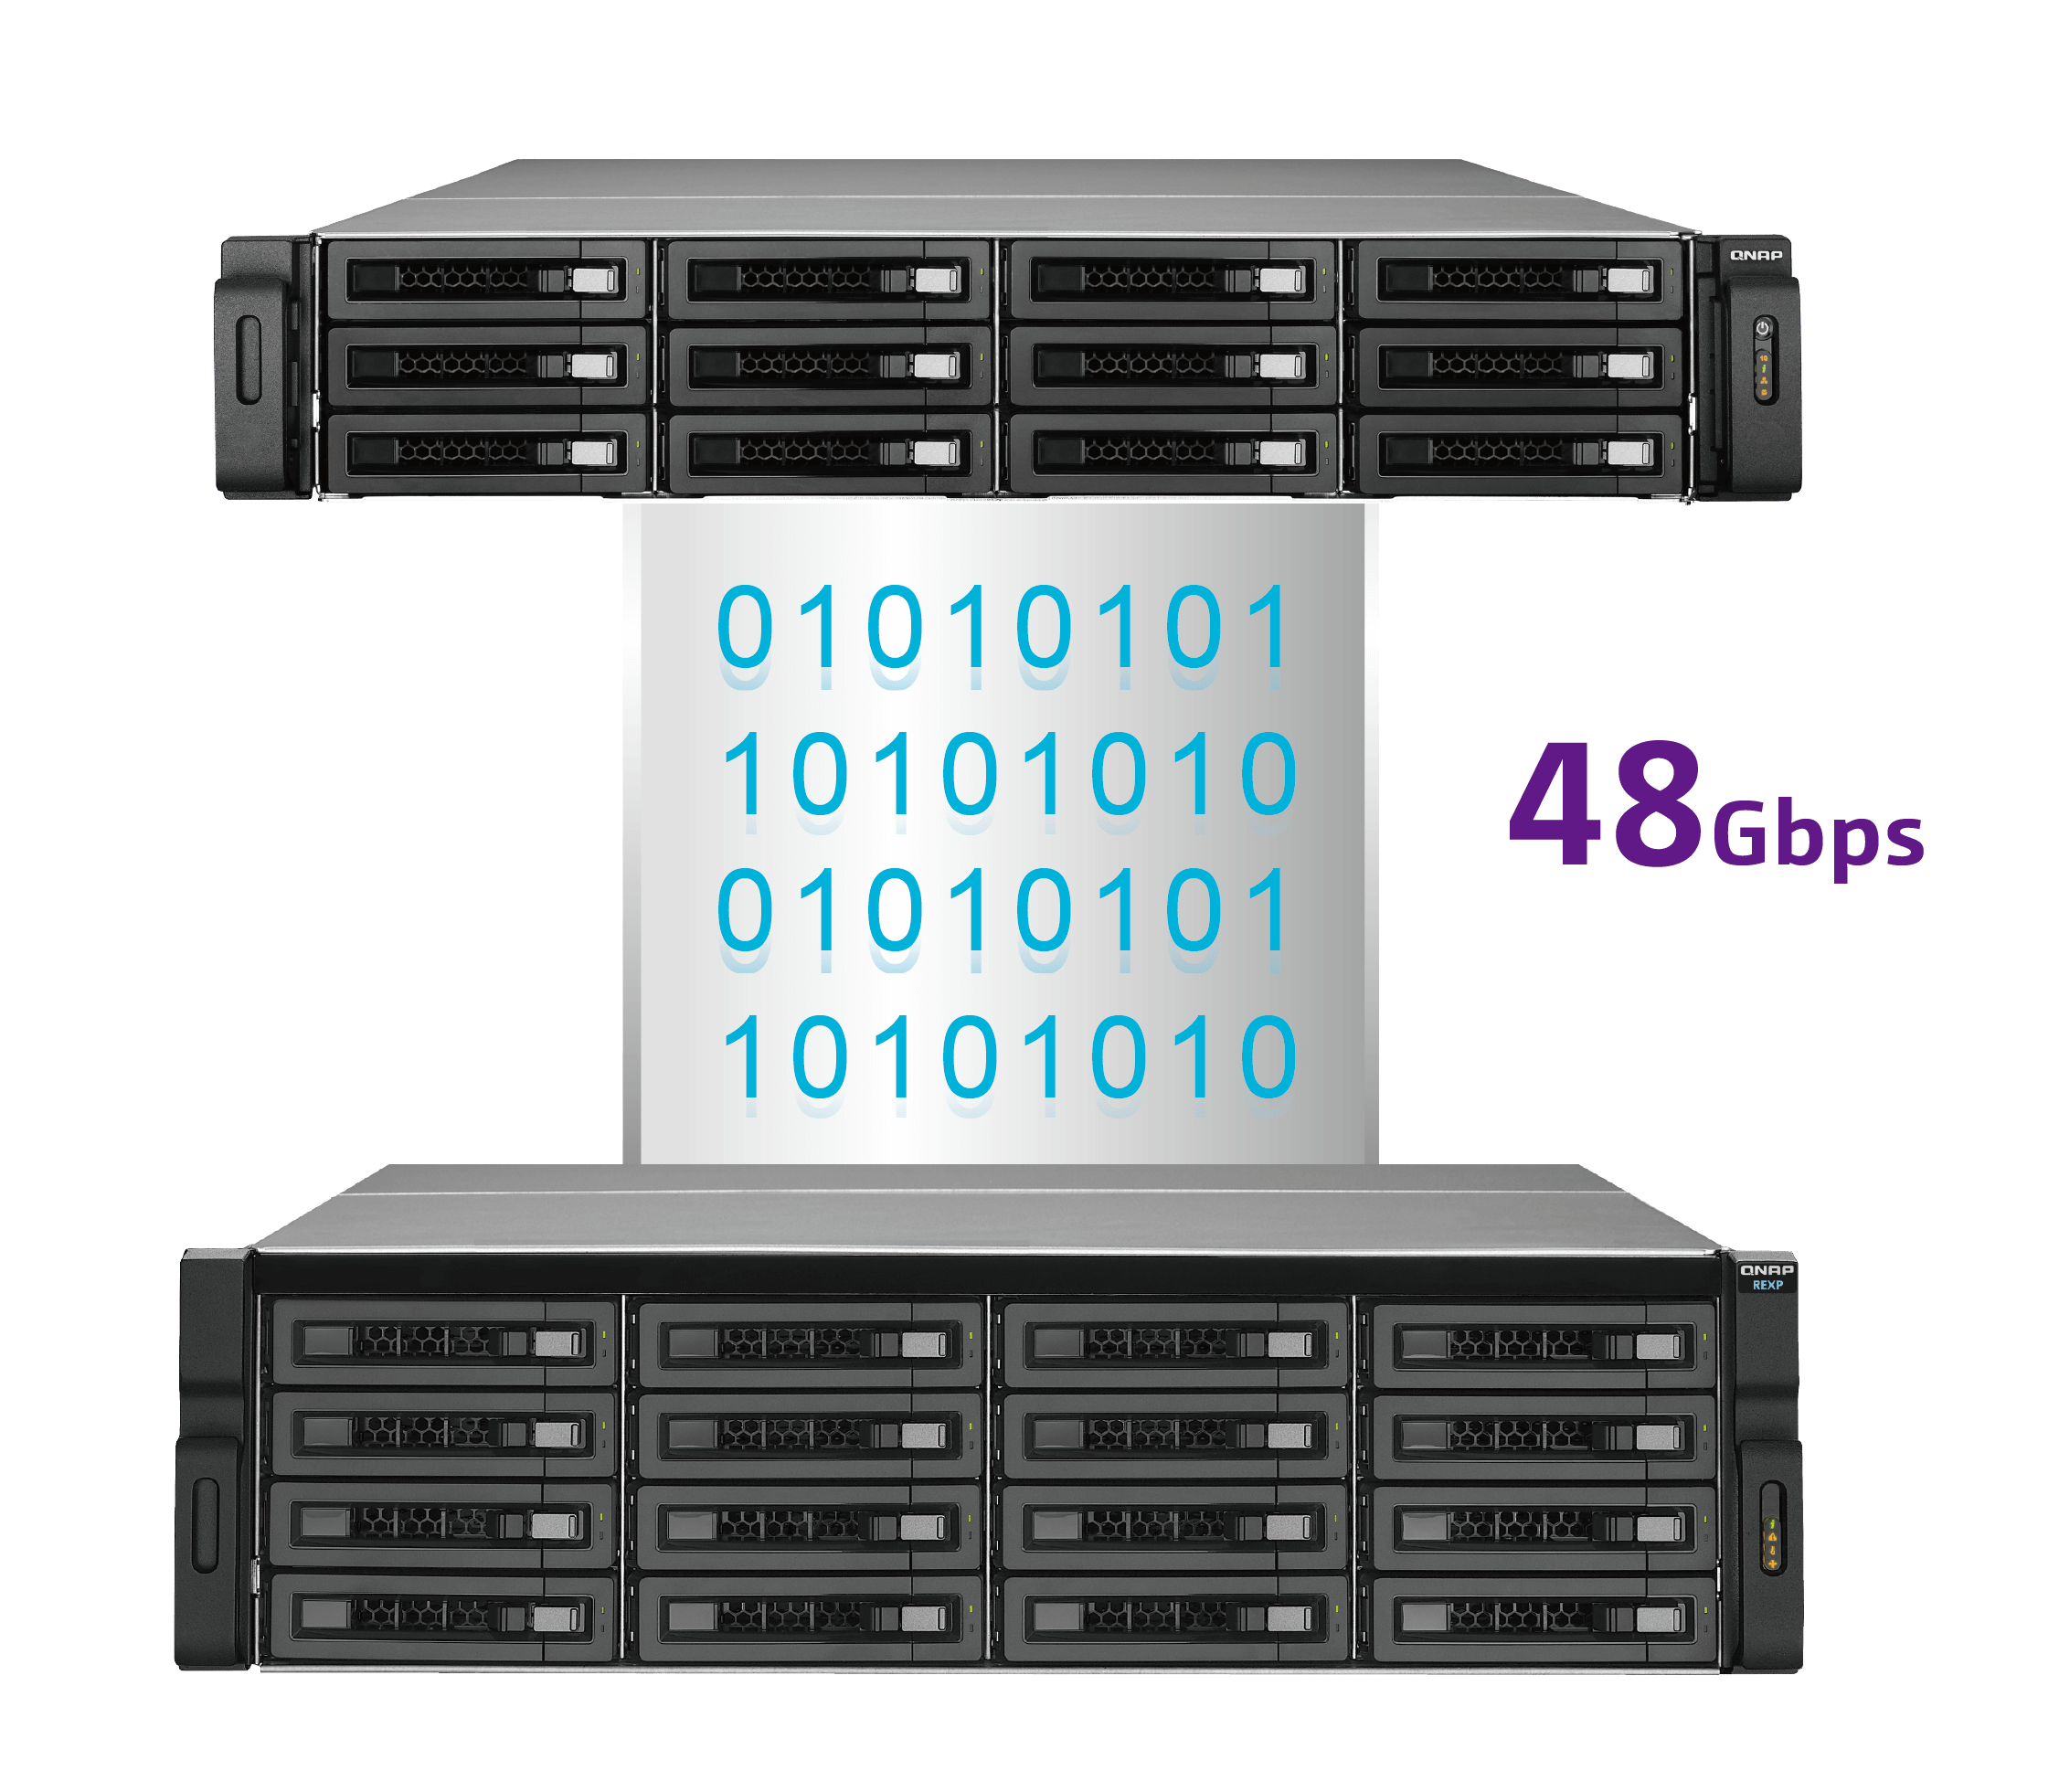 High Density, efficiency and scalability